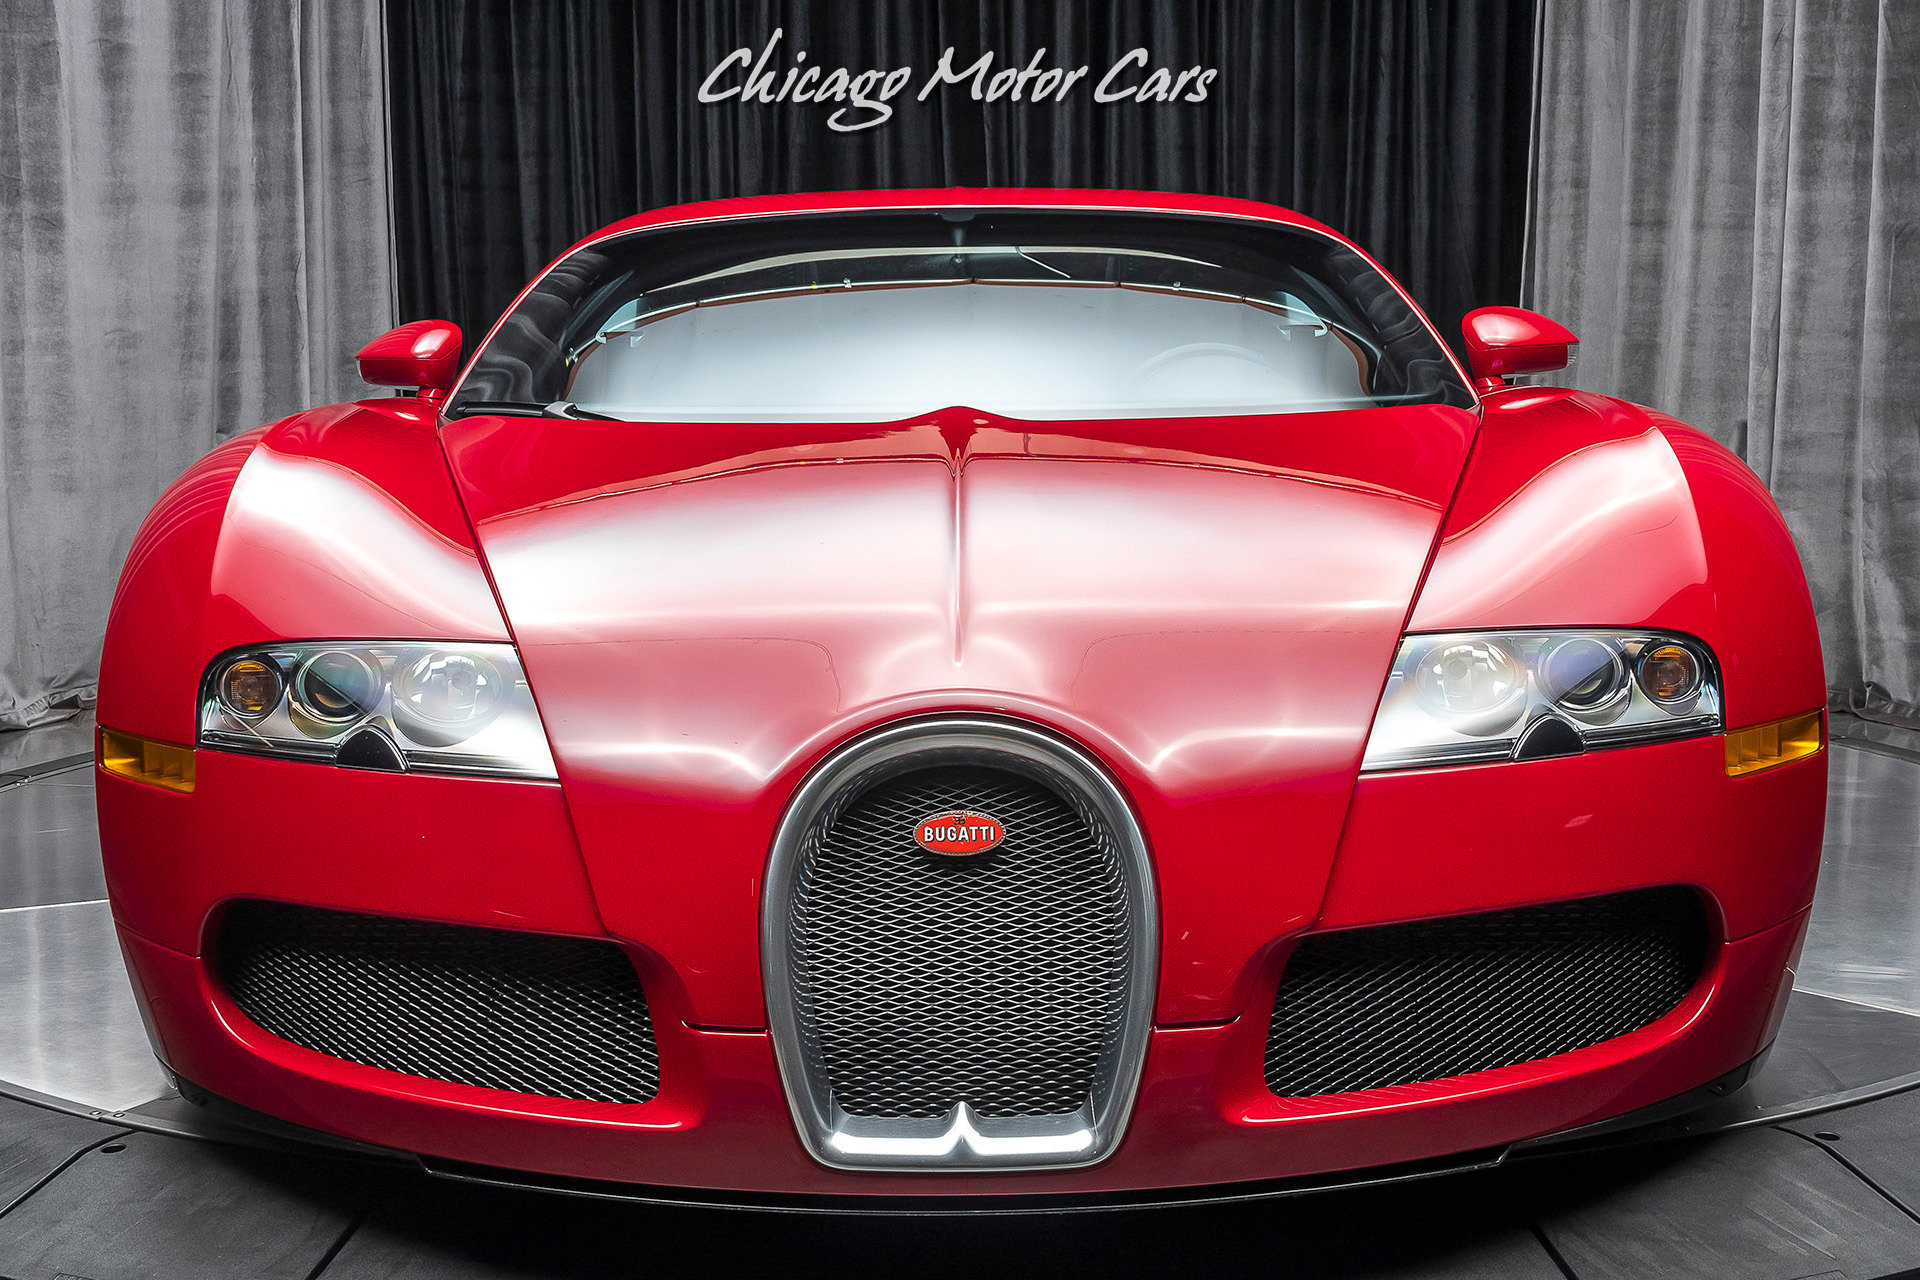 Used-2008-Bugatti-Veyron-164-Coupe-Only-5k-Miles-Impeccable-Service-History